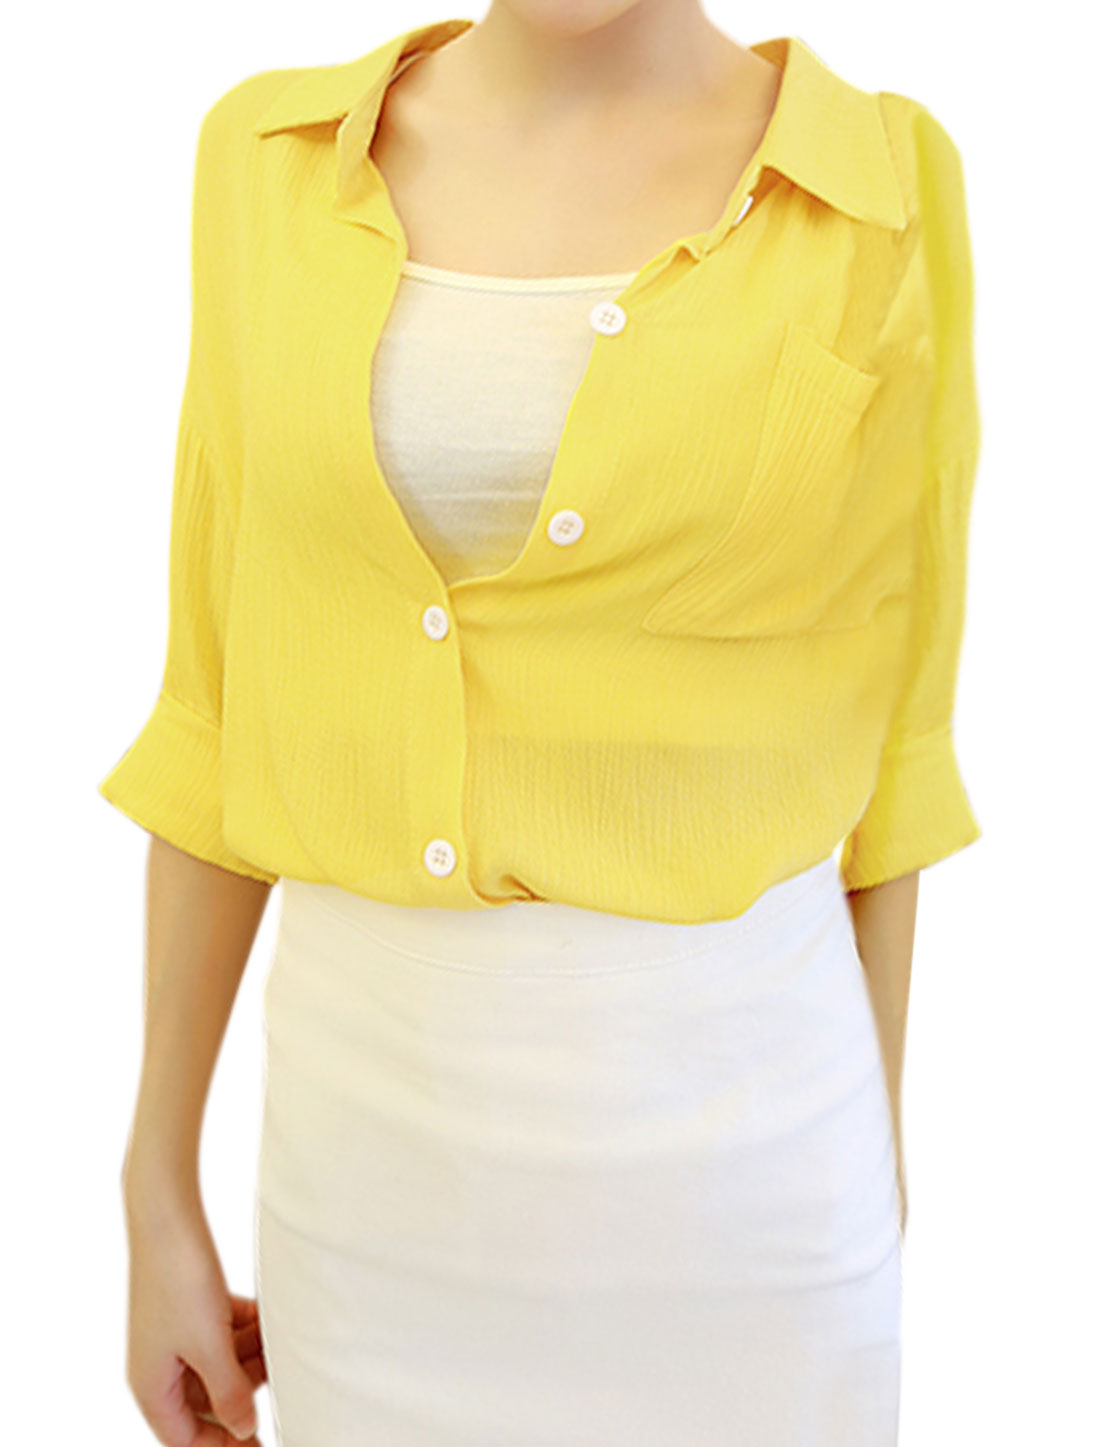 Women Collared Roll Up Sleeves Semi Sheer Blouse Yellow XS